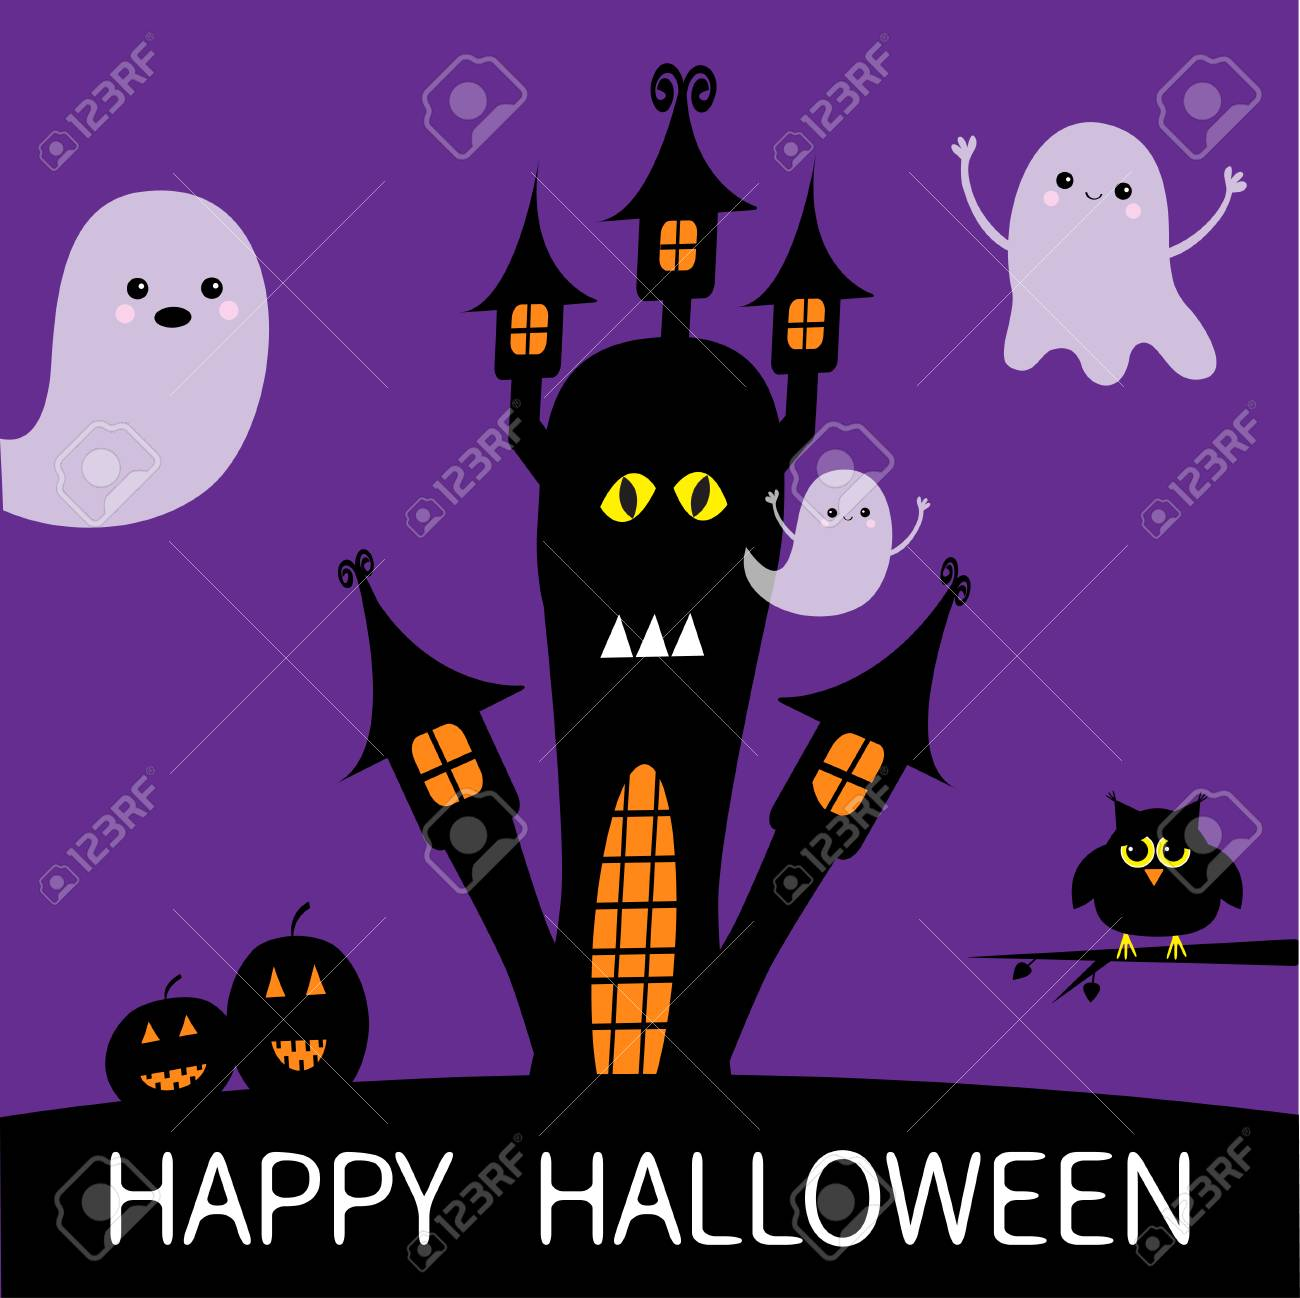 halloween card. haunted house silhouette with eyes, windows